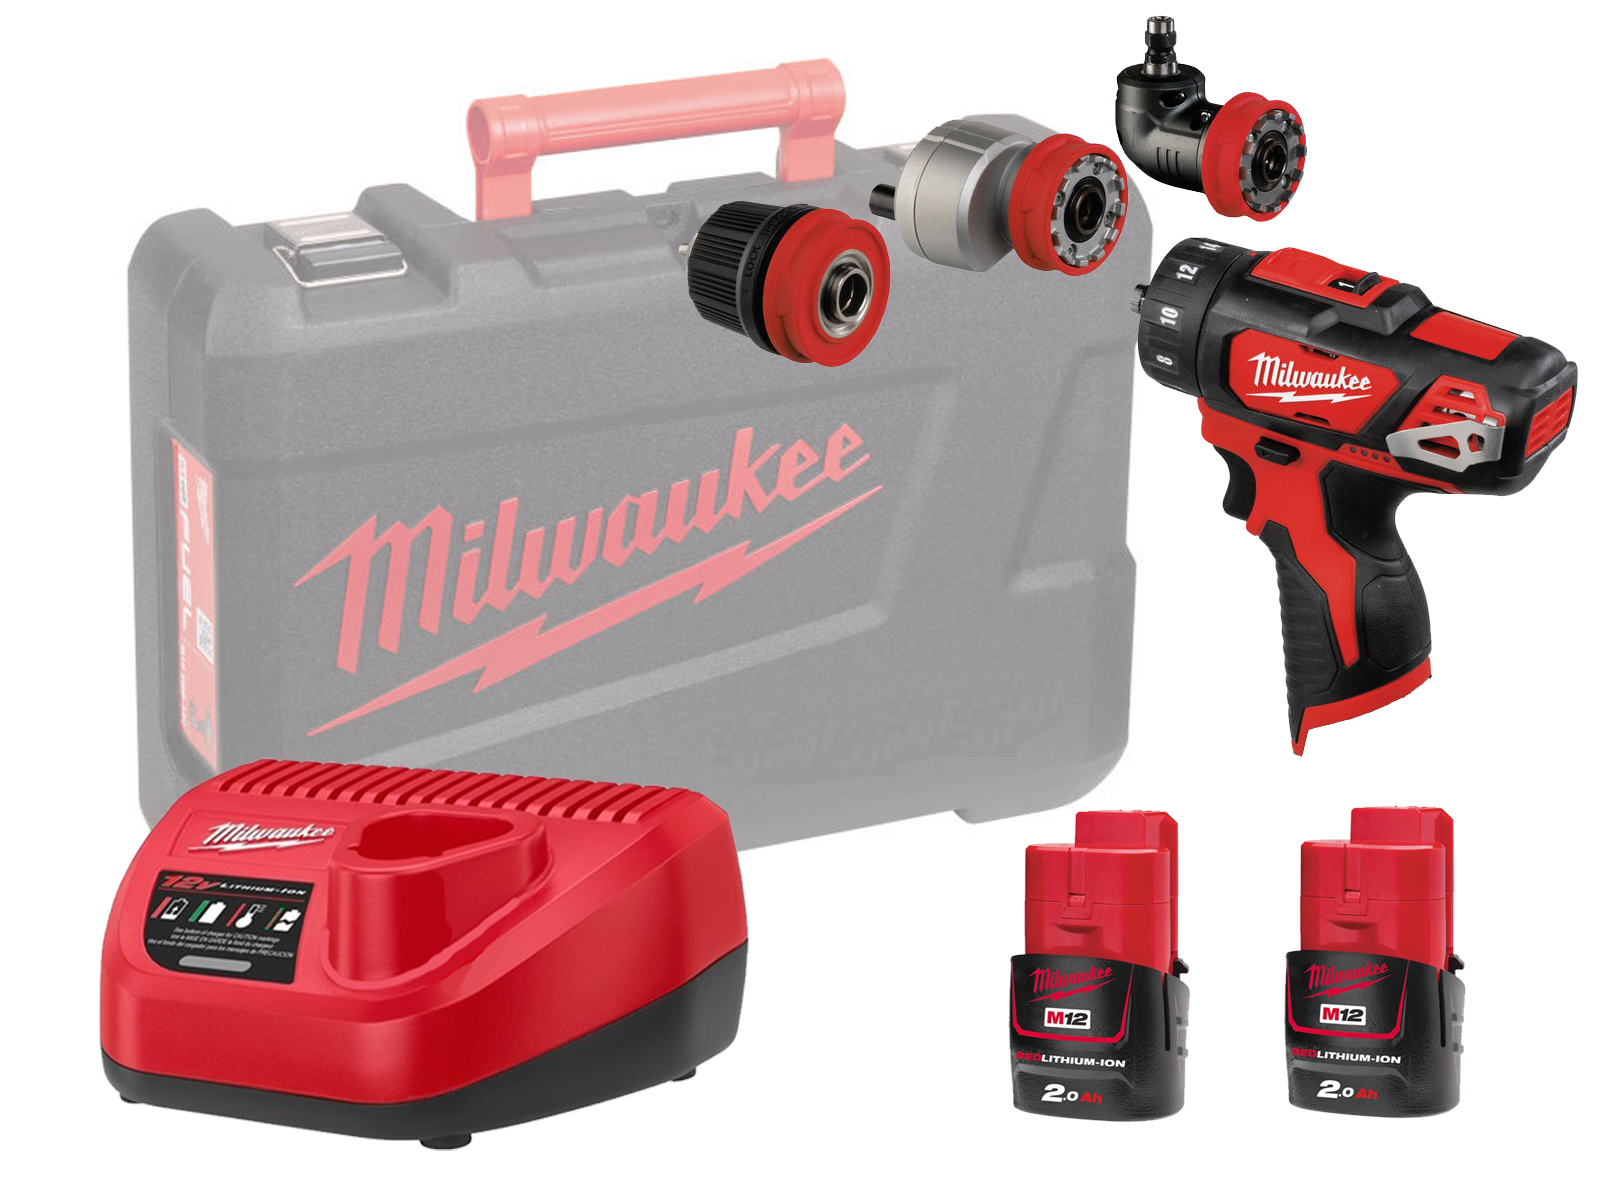 MILWAUKEE 12V DRILL / HEX / OFFSET / RIGHT ANGLE - M12BDDXKIT - 2.0AH PACK